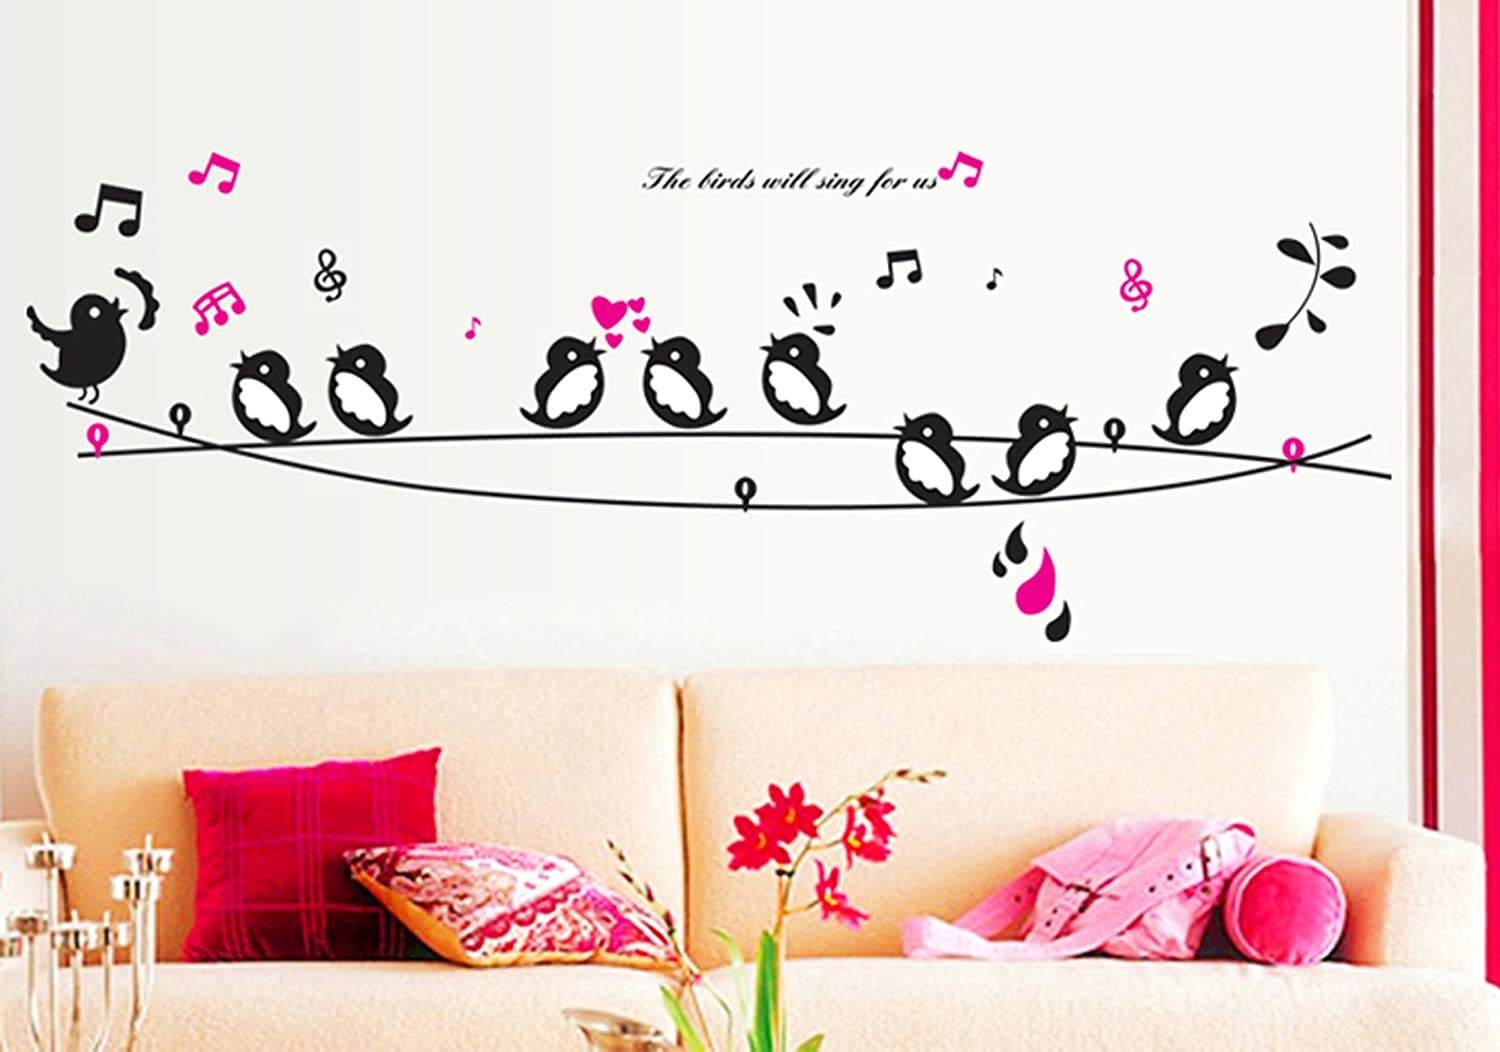 Buy uberlyfe singing birds wall sticker size 3 wall covering area buy uberlyfe singing birds wall sticker size 3 wall covering area 58cm x 160cm ws 735 online at low prices in india amazon amipublicfo Image collections